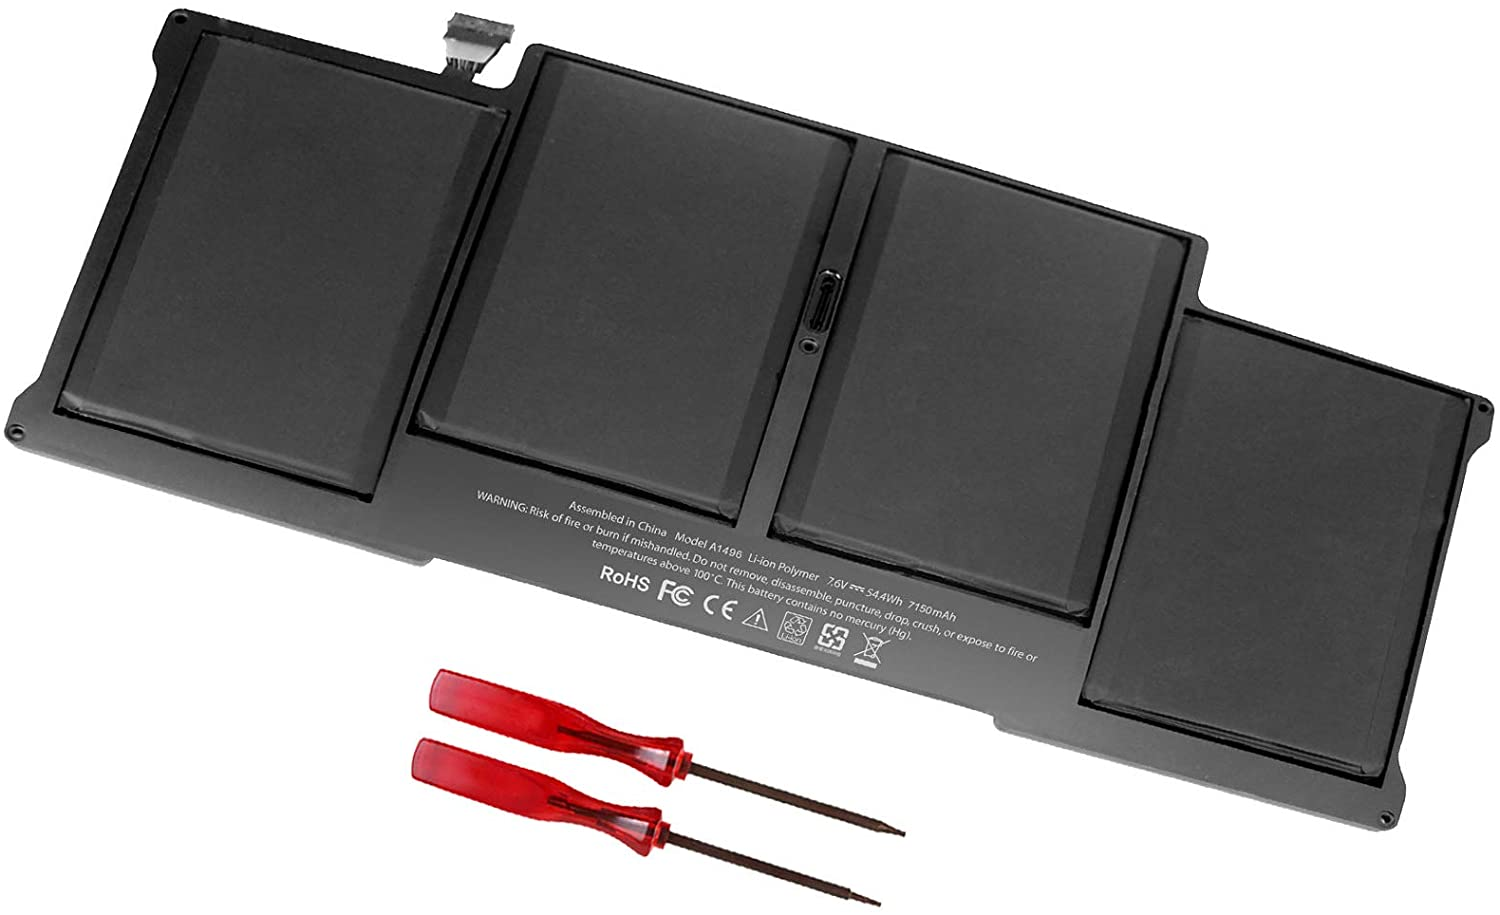 A1405 A1466 Laptop Battery for MacBook Air 13 inch A1466(Mid 2012, Mid 2013, Early 2014, Early 2015, 2017) A1369(Late 2010, Mid 2011 Version) fits A1496 A1377 [EMC :2925, 2469, 2559, 2392, 2632, 3178]